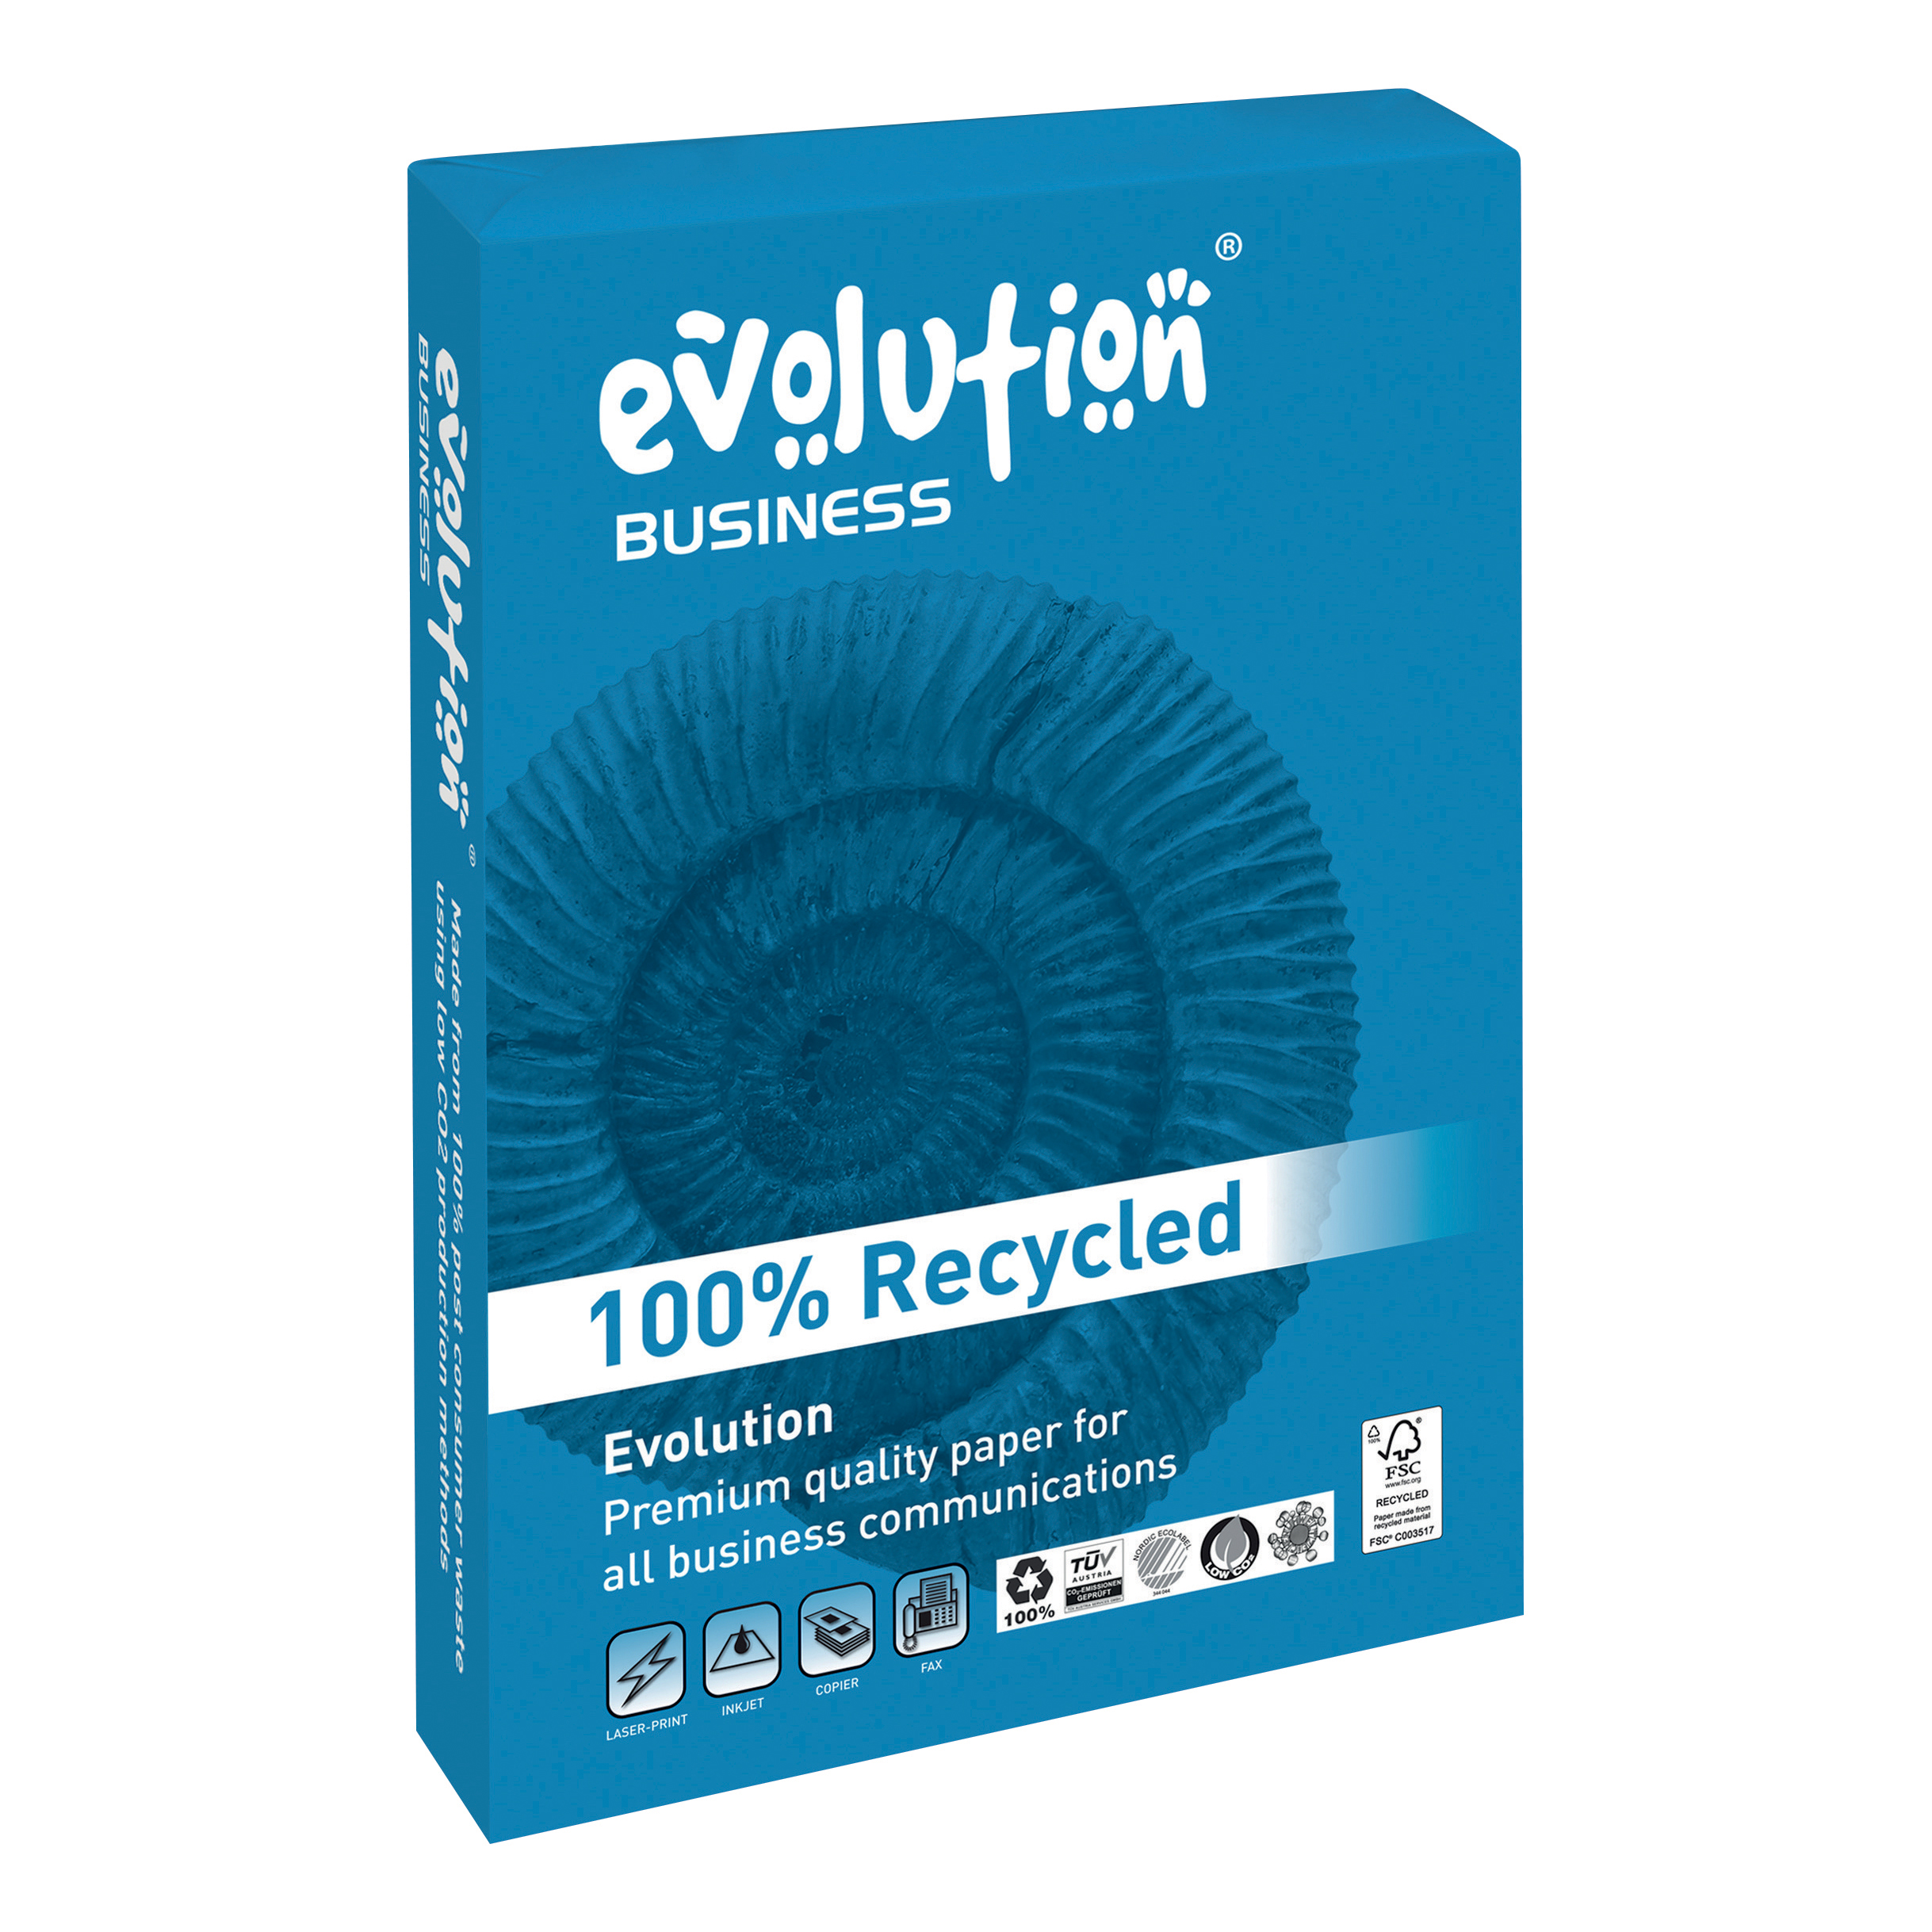 A3 Evolution Business Paper FSC Recycled Ream-wrapped 100gsm A3 White Ref EVBU2100 500 Sheets